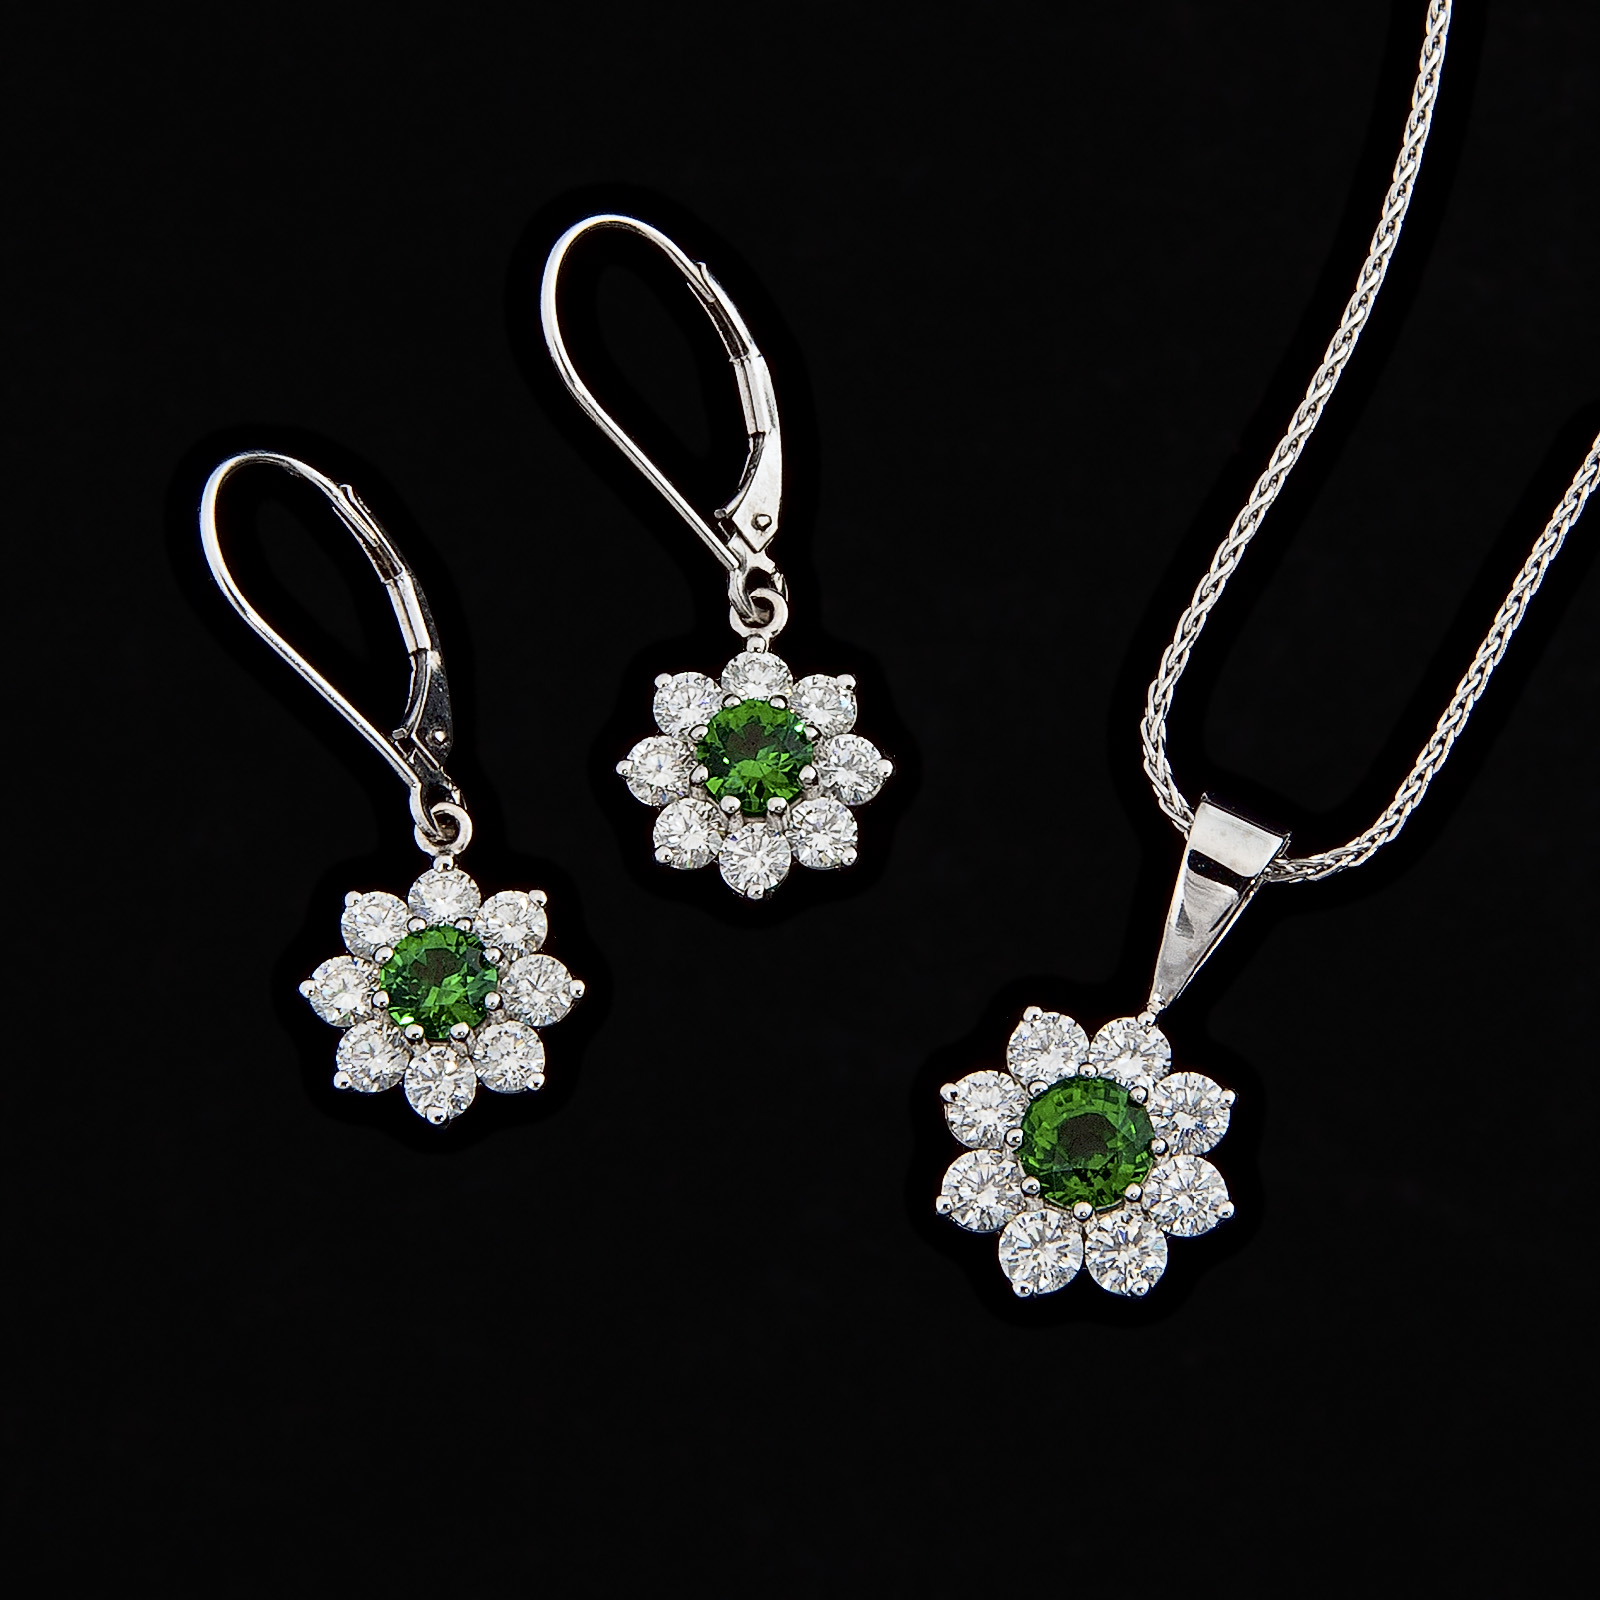 Tsavorite garnet earrings and necklace